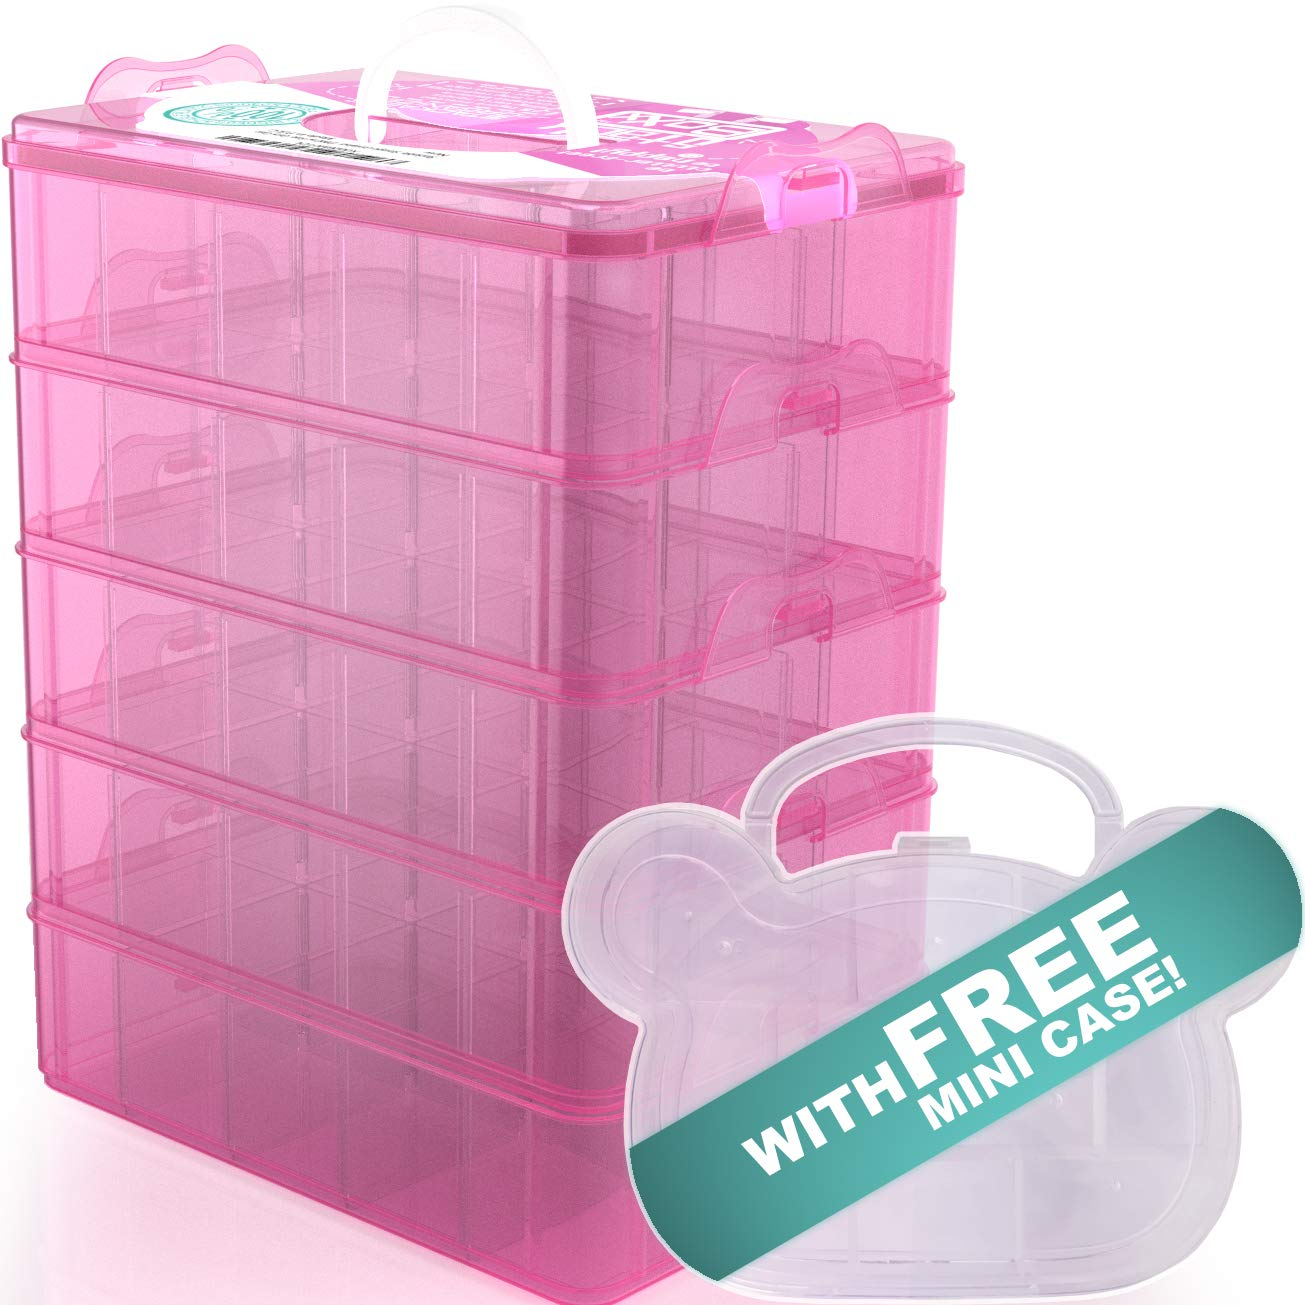 Stack Boxx Stackable Organizer and Storage Container (Pink) +Free Case | Be Clutter-Free, Be Happy! 5 Layers w/Handle -Perfect Solution for Kids Toys, Art Crafts, Jewelry, School & Office Supplies